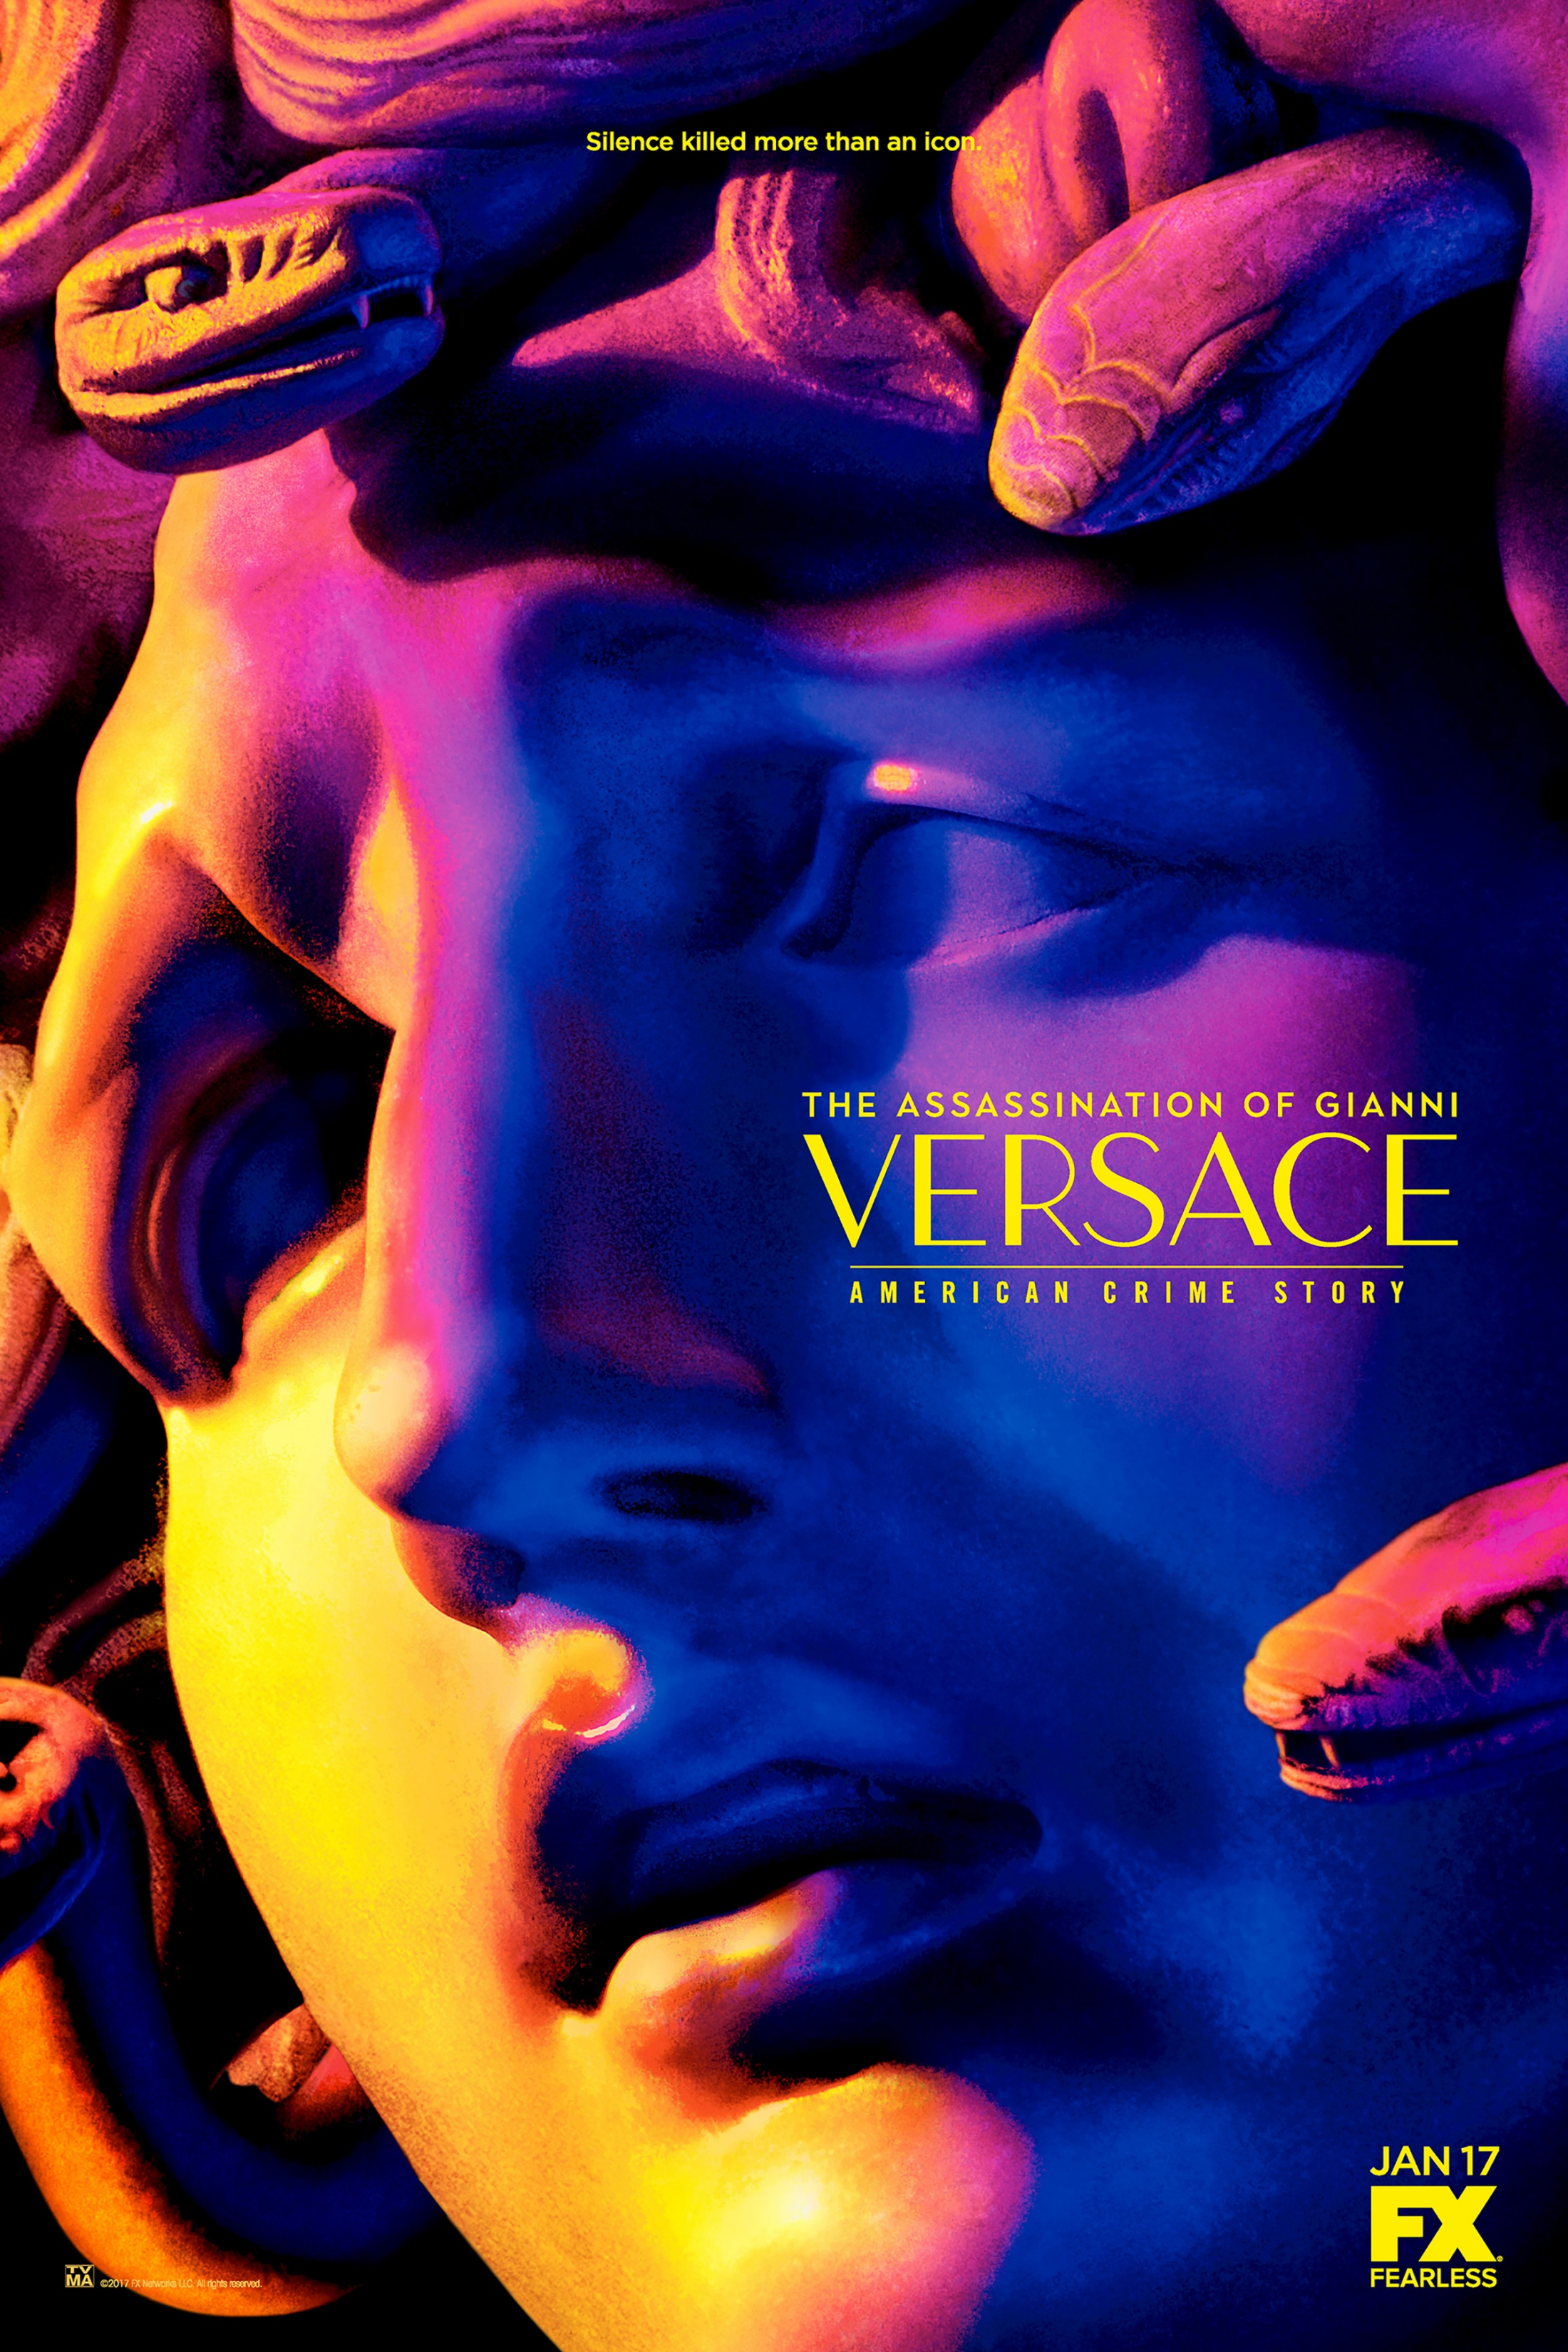 Thumbnail for The Assassination of Gianni Versace: American Crime Story